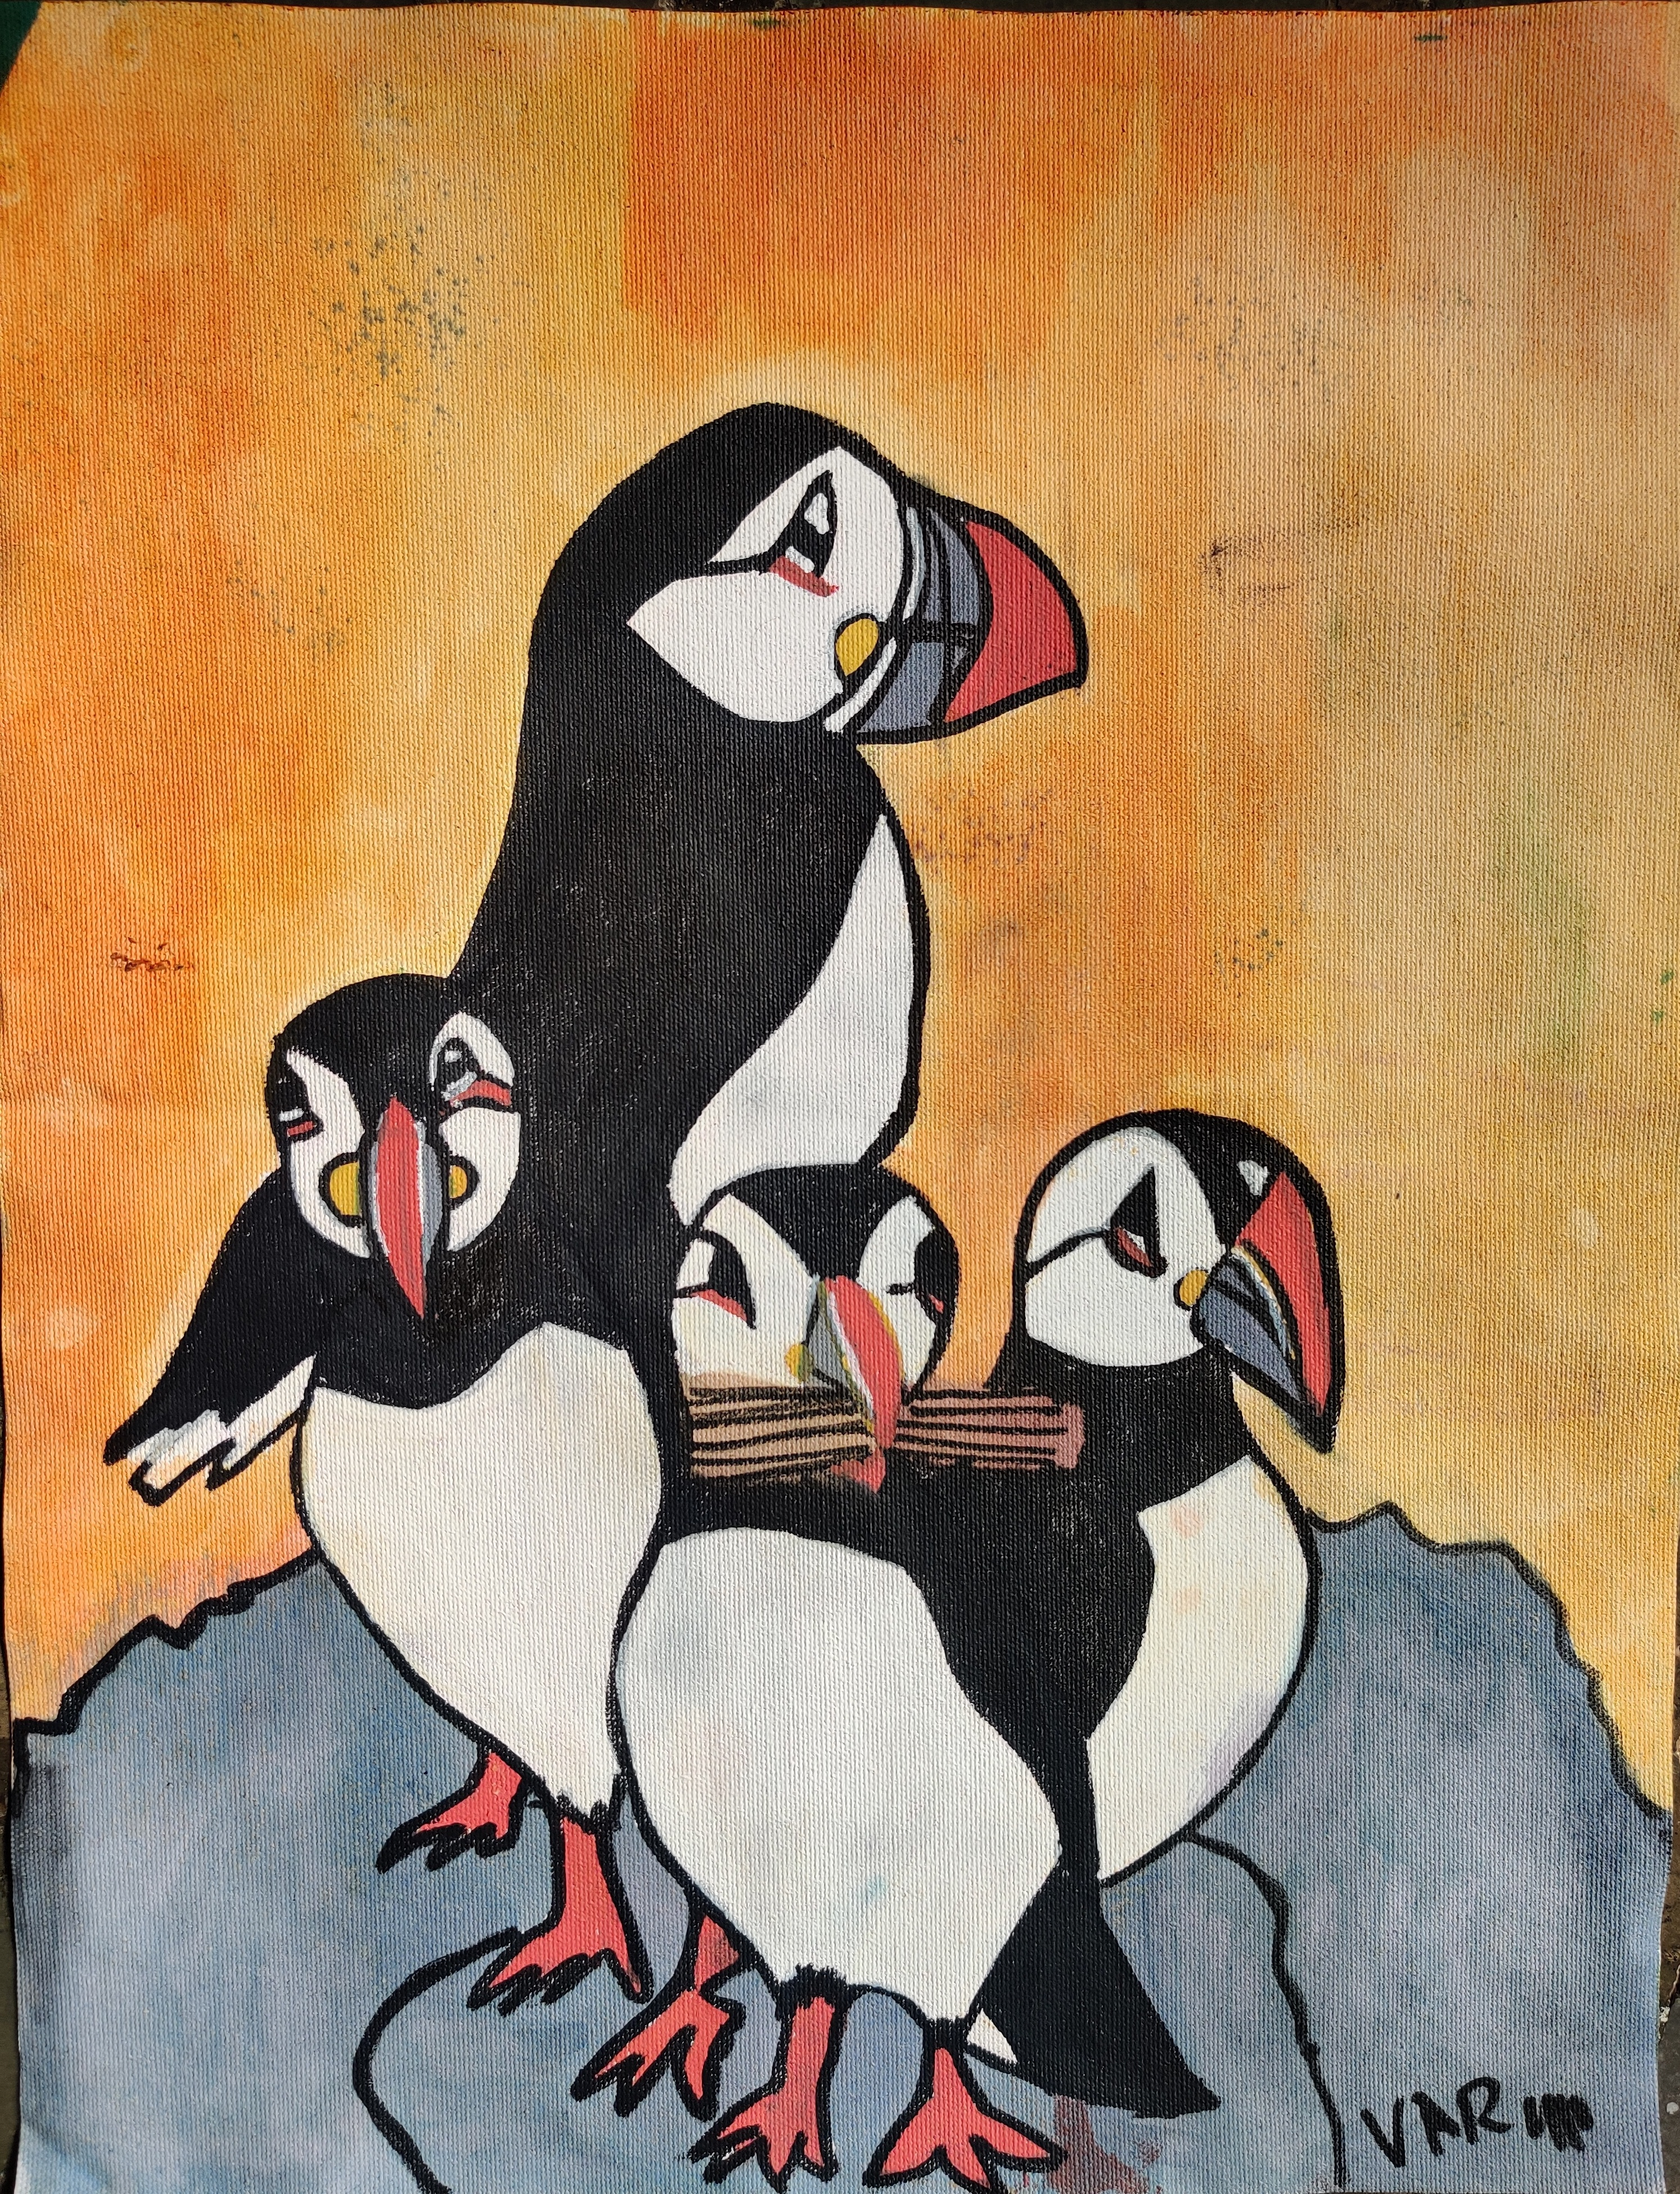 Family of Puffins Slider 1/1